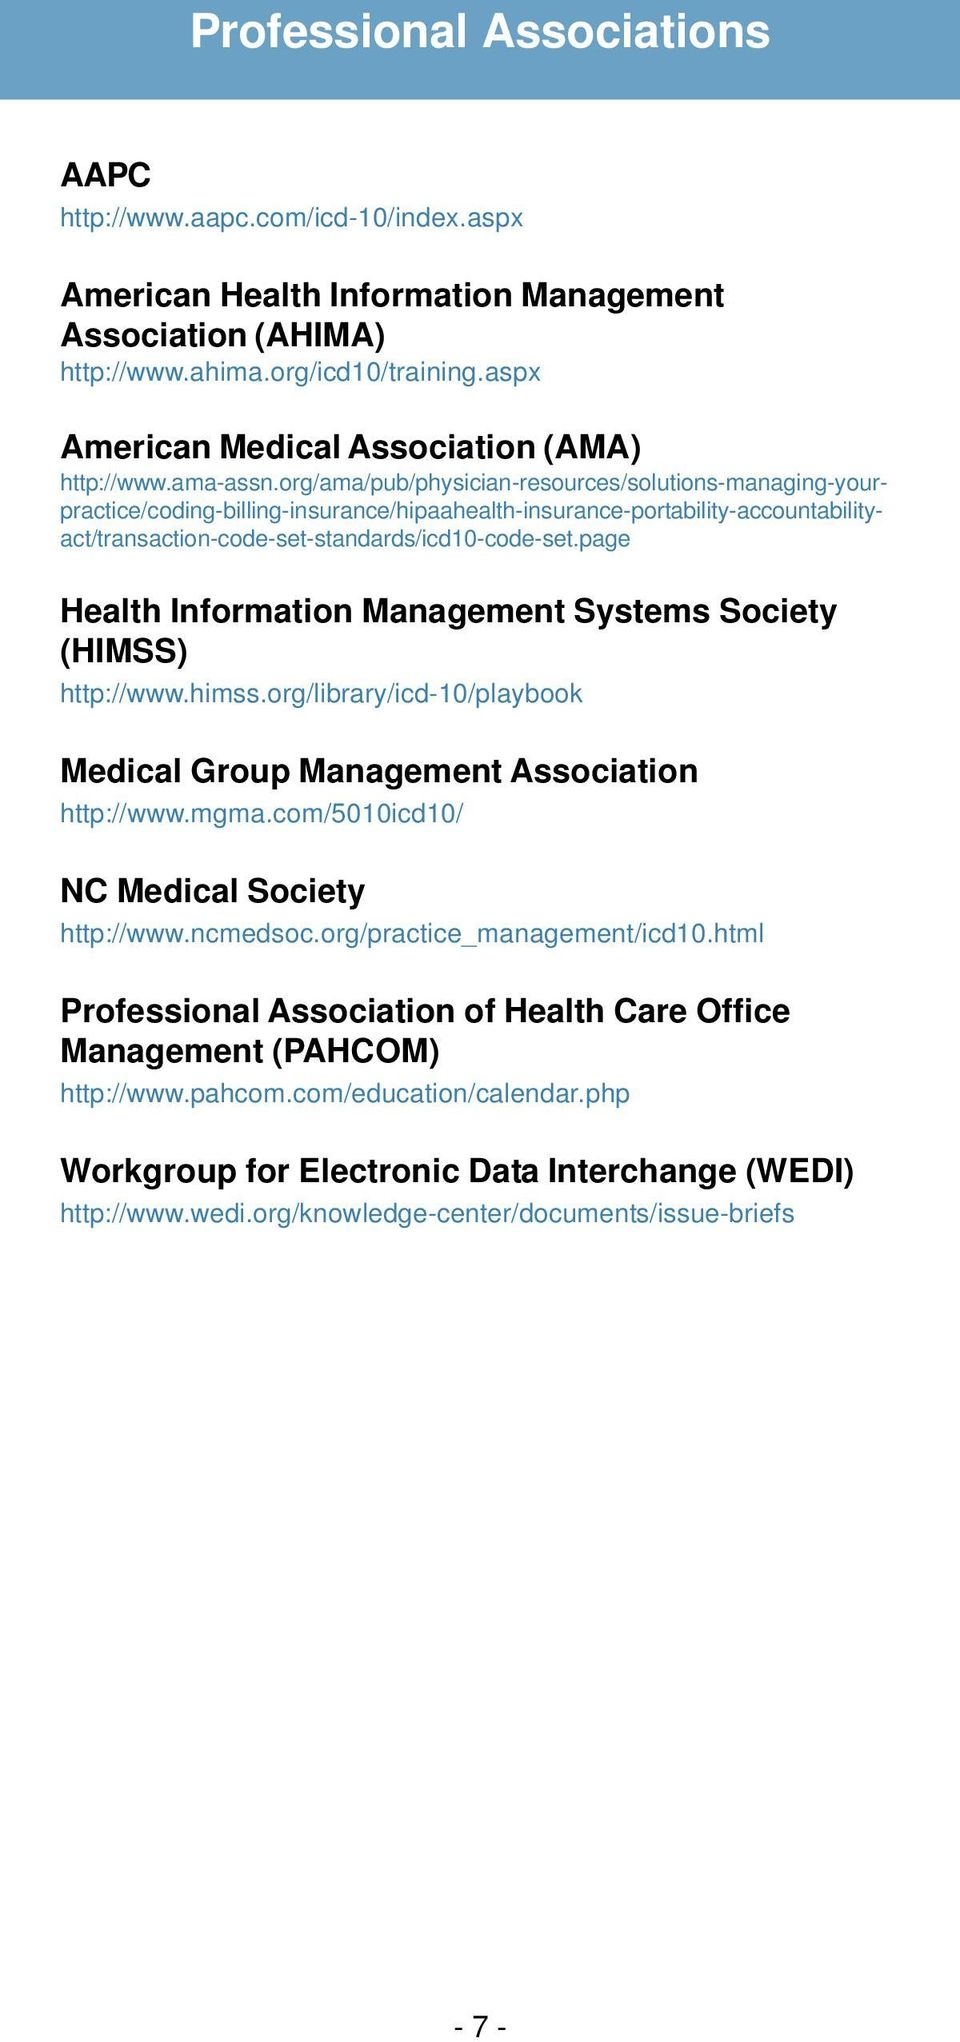 org/ama/pub/physician-resources/solutions-managing-yourpractice/coding-billing-insurance/hipaahealth-insurance-portability-accountabilityact/transaction-code-set-standards/icd10-code-set.